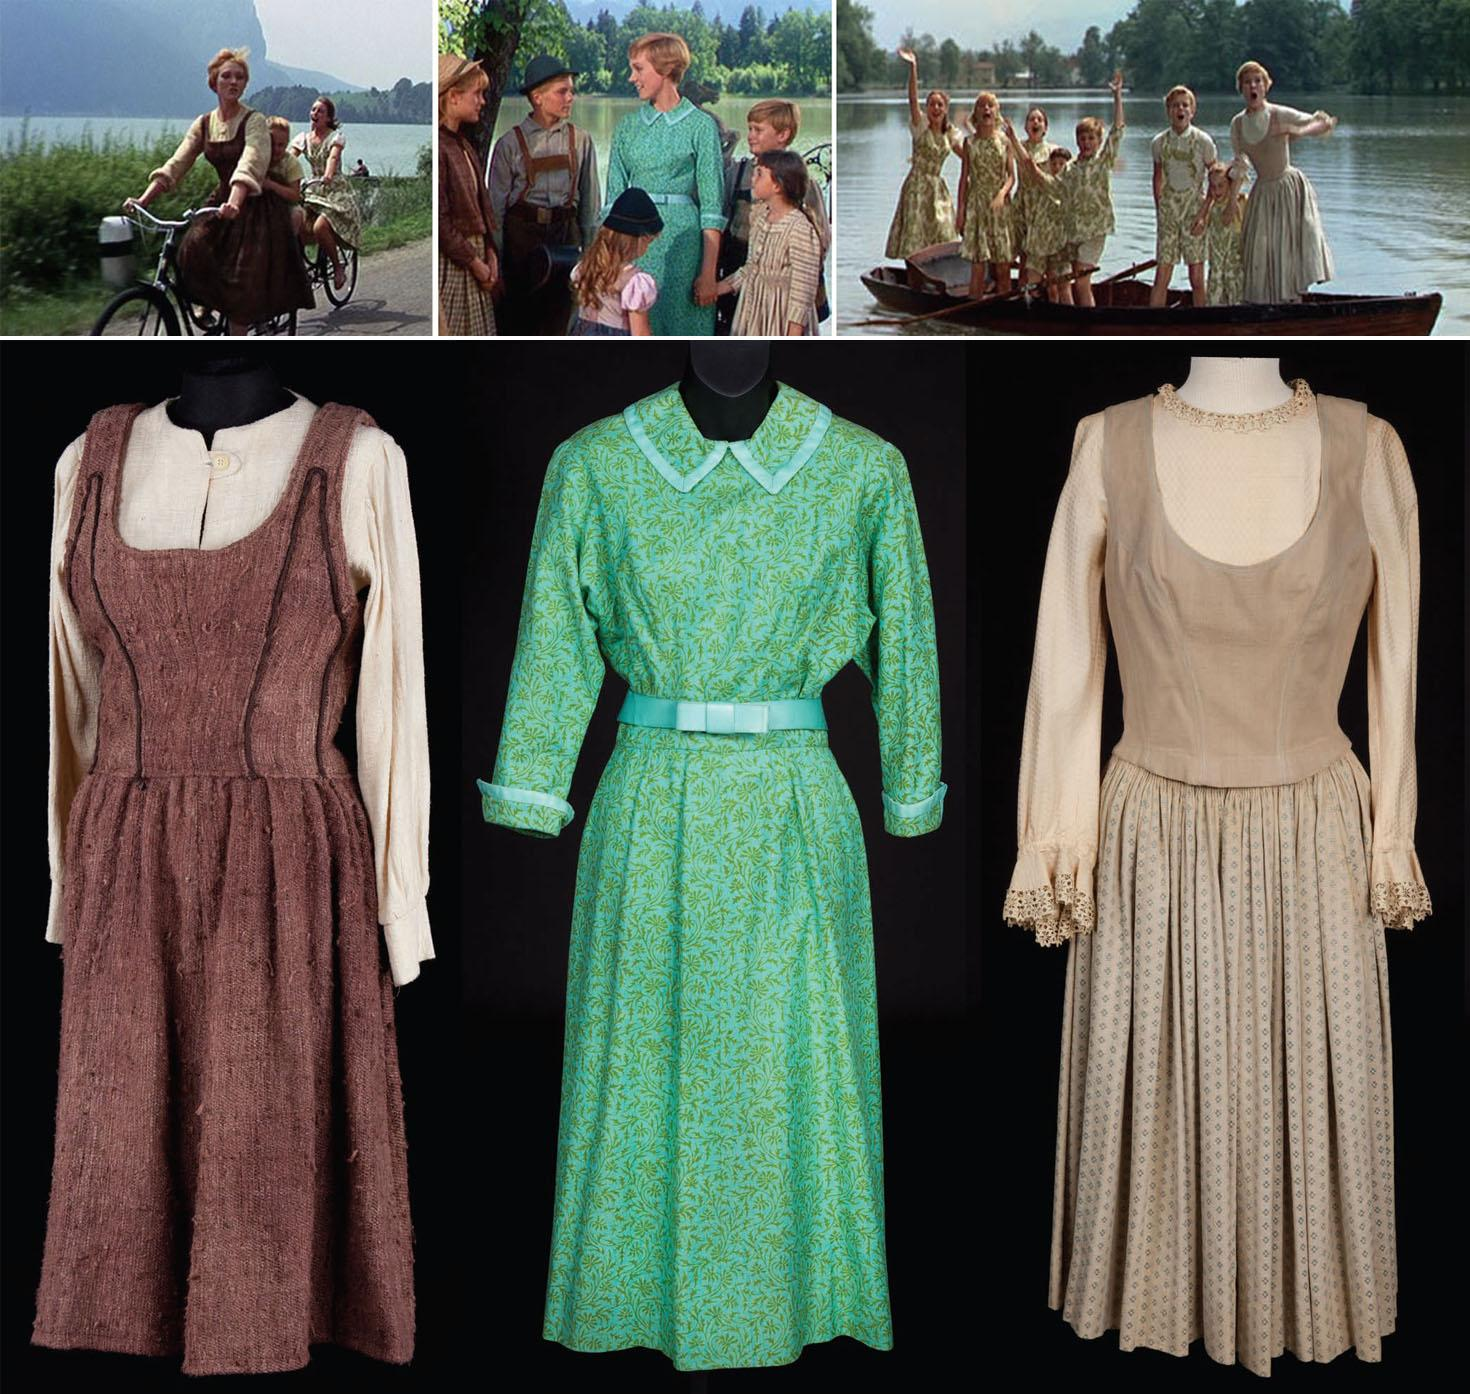 Enchanted Serenity Of Period Films Gallery Of Period Costumes To Be Sold In